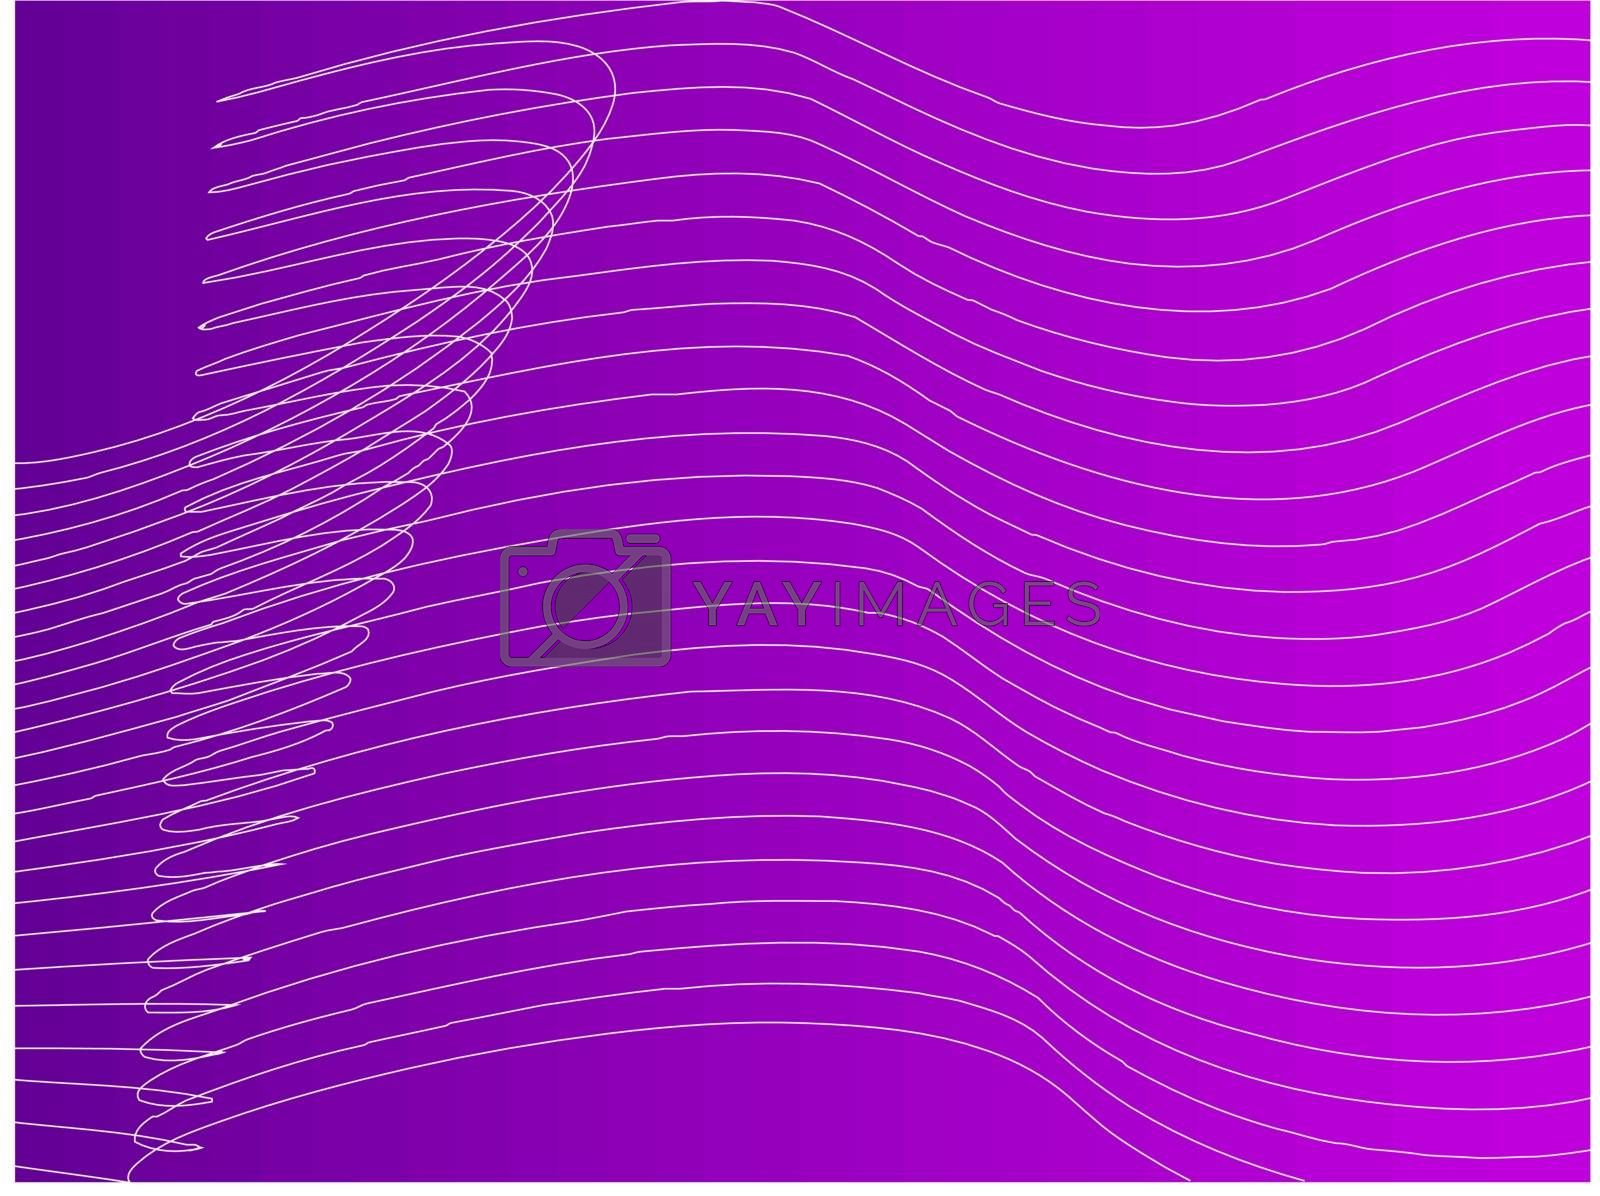 abstract  texture background by Serhii Lohvyniuk